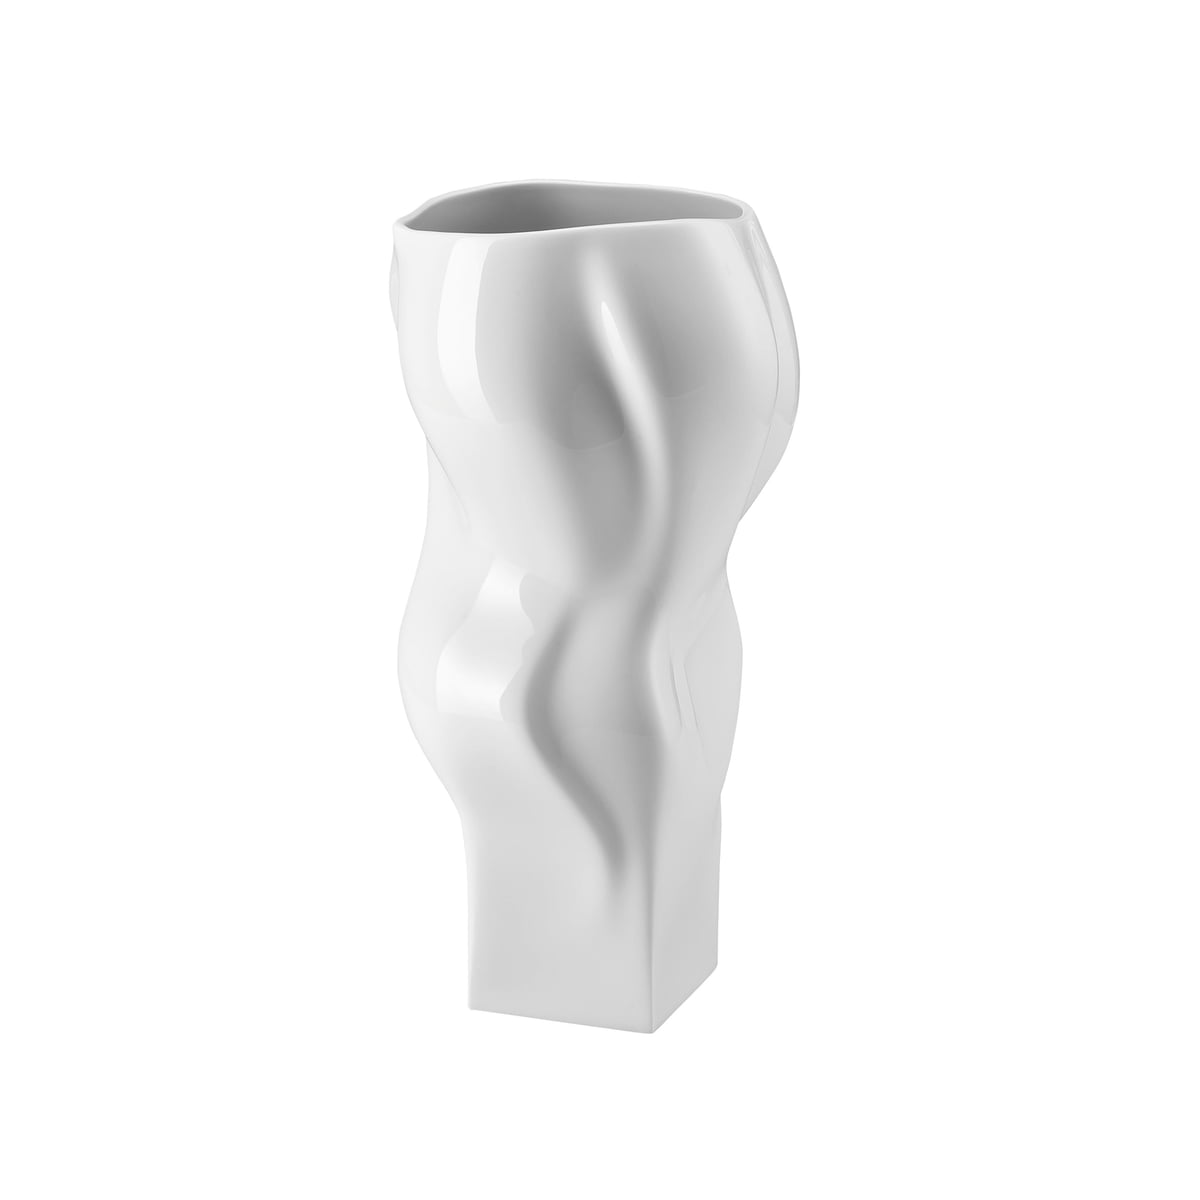 Blown vase by rosenthal in the shop the blown vase by rosenthal with a size of 27cm reviewsmspy